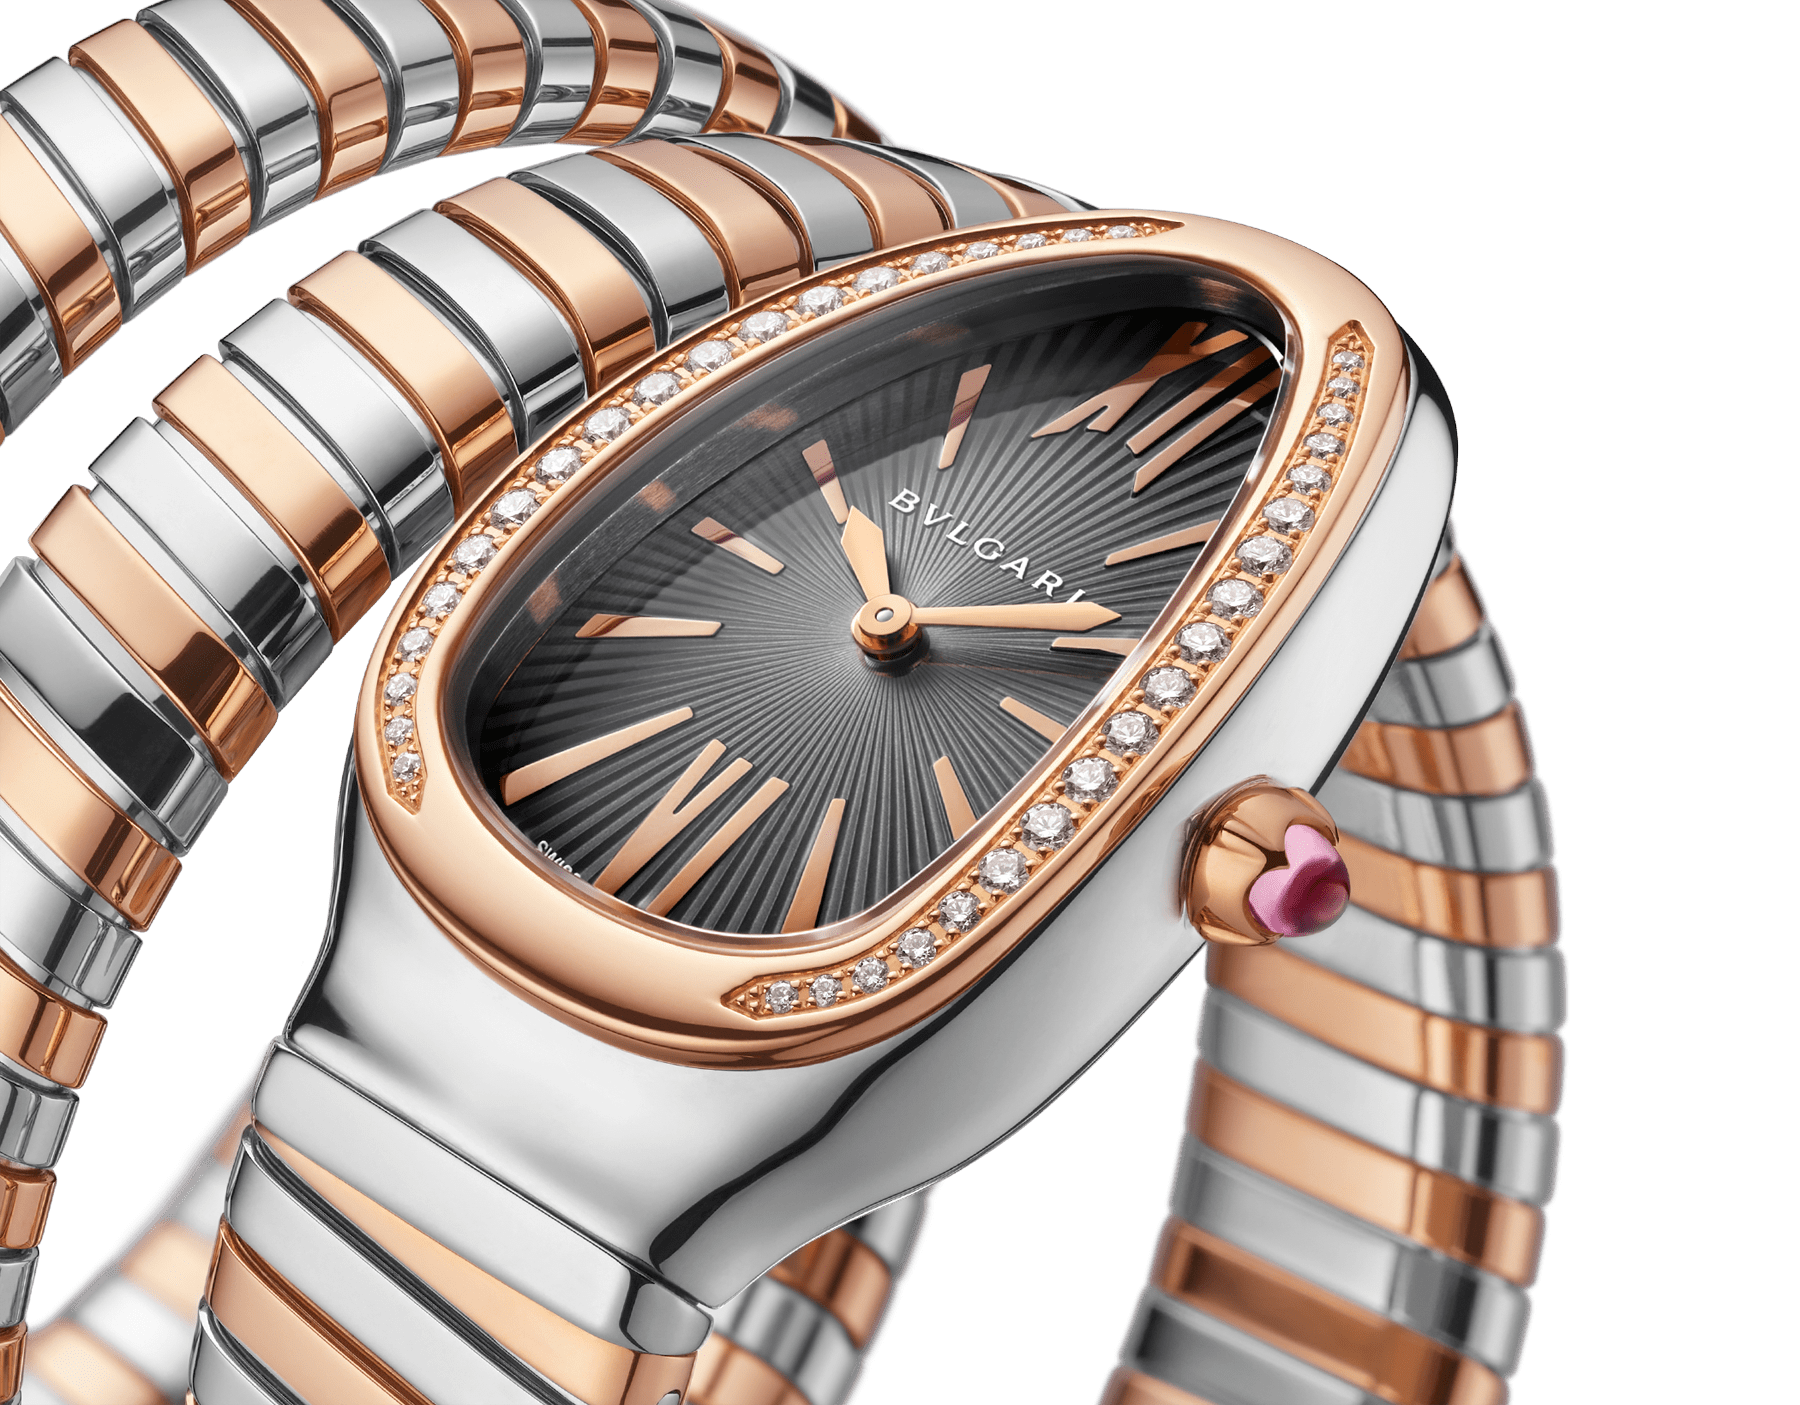 Serpenti Tubogas double spiral watch with stainless steel case, 18 kt rose gold bezel set with brilliant cut diamonds, grey lacquered dial, 18 kt rose gold and stainless steel bracelet. 102680 image 3